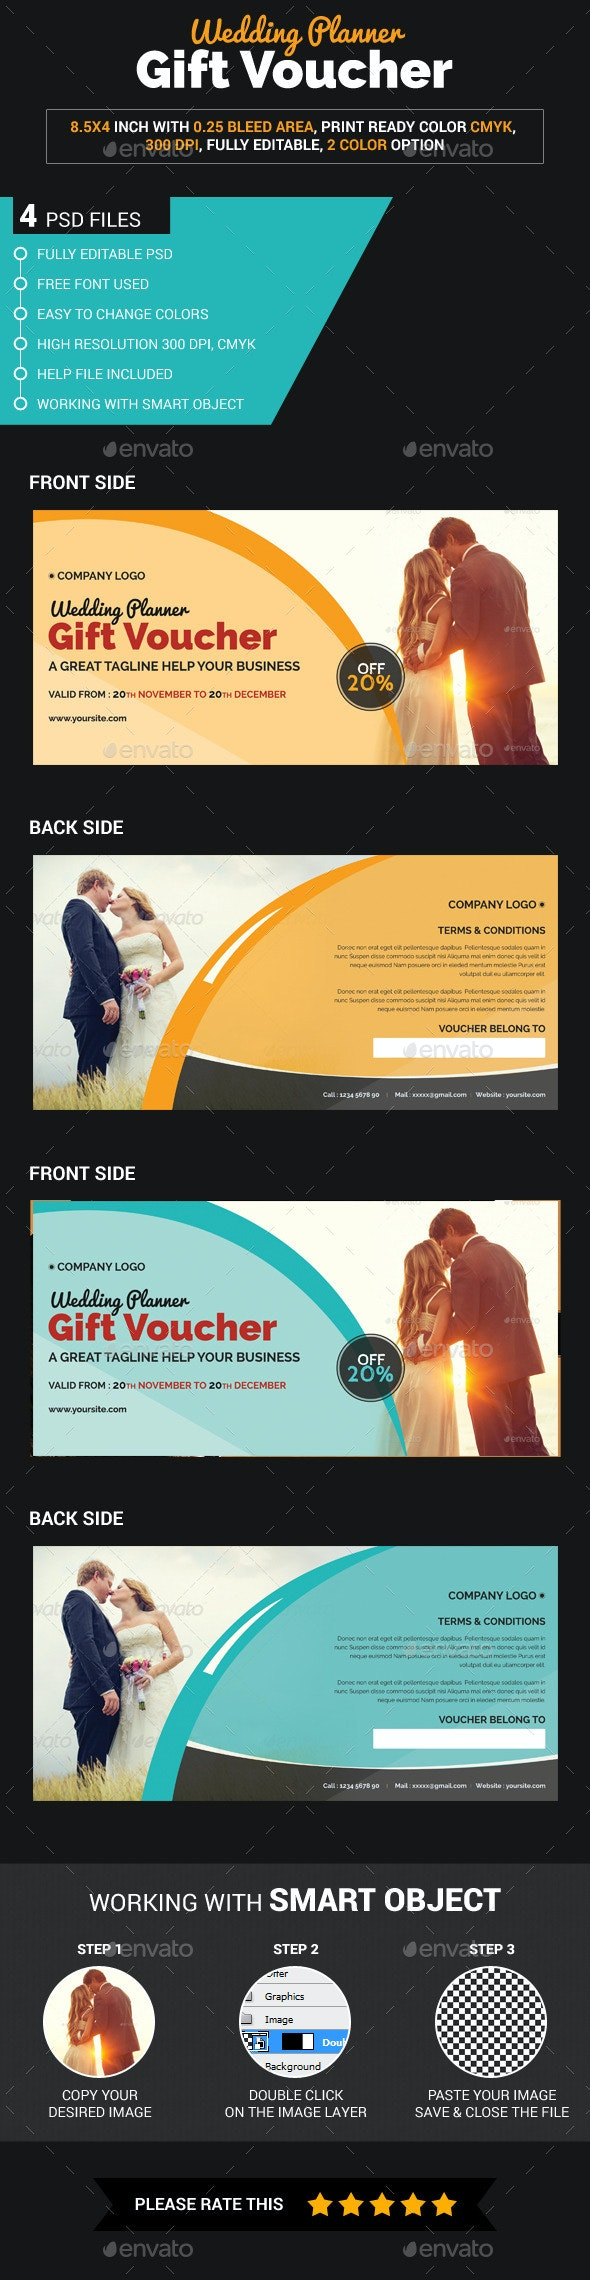 Wedding Planner Gift Voucher - Loyalty Cards Cards & Invites